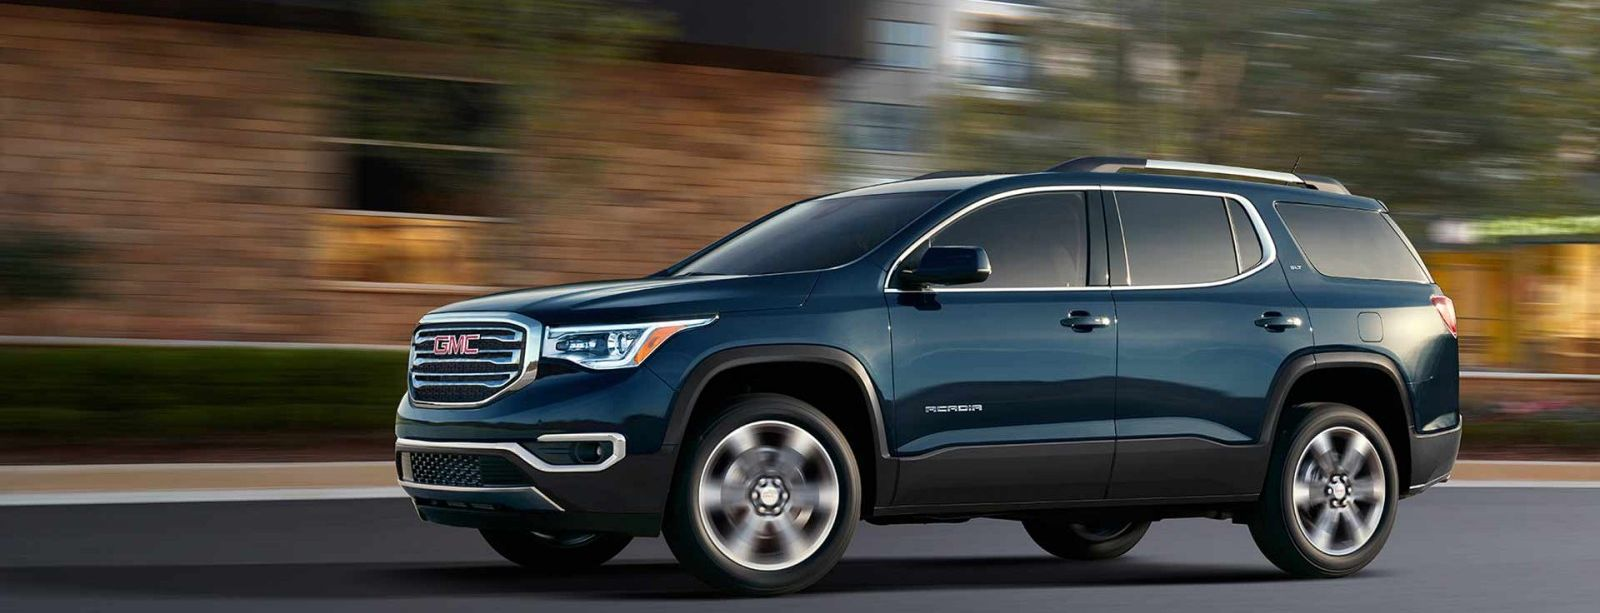 2017 gmc acadia for sale near columbia mo riley auto group. Black Bedroom Furniture Sets. Home Design Ideas